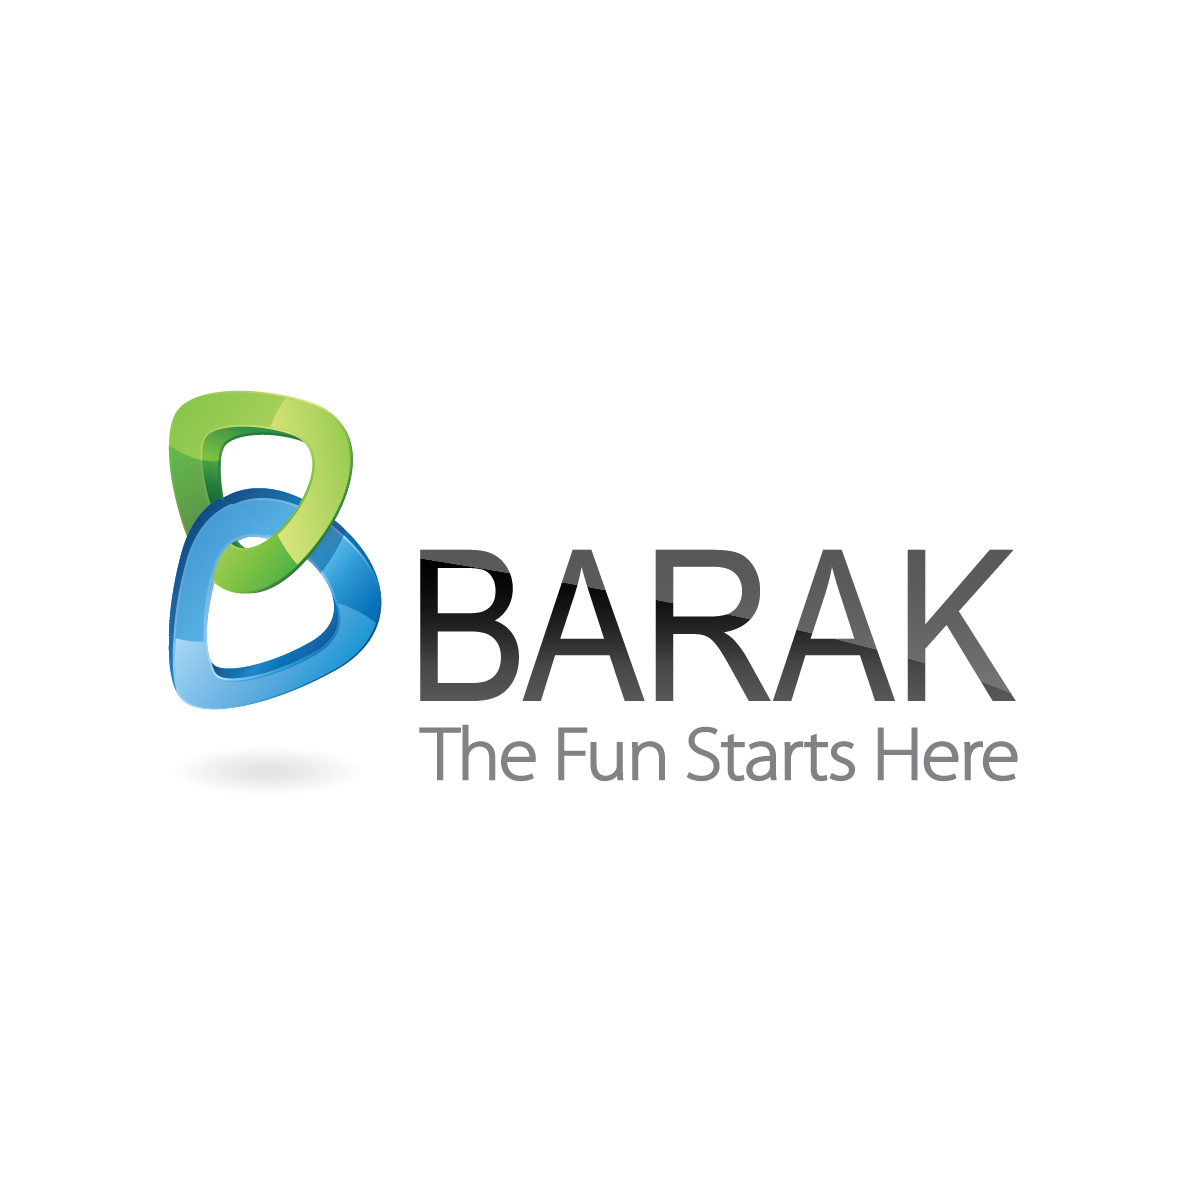 https://barak-tickets.co.il/custom/images/BARAK_logo_takanon.jpg